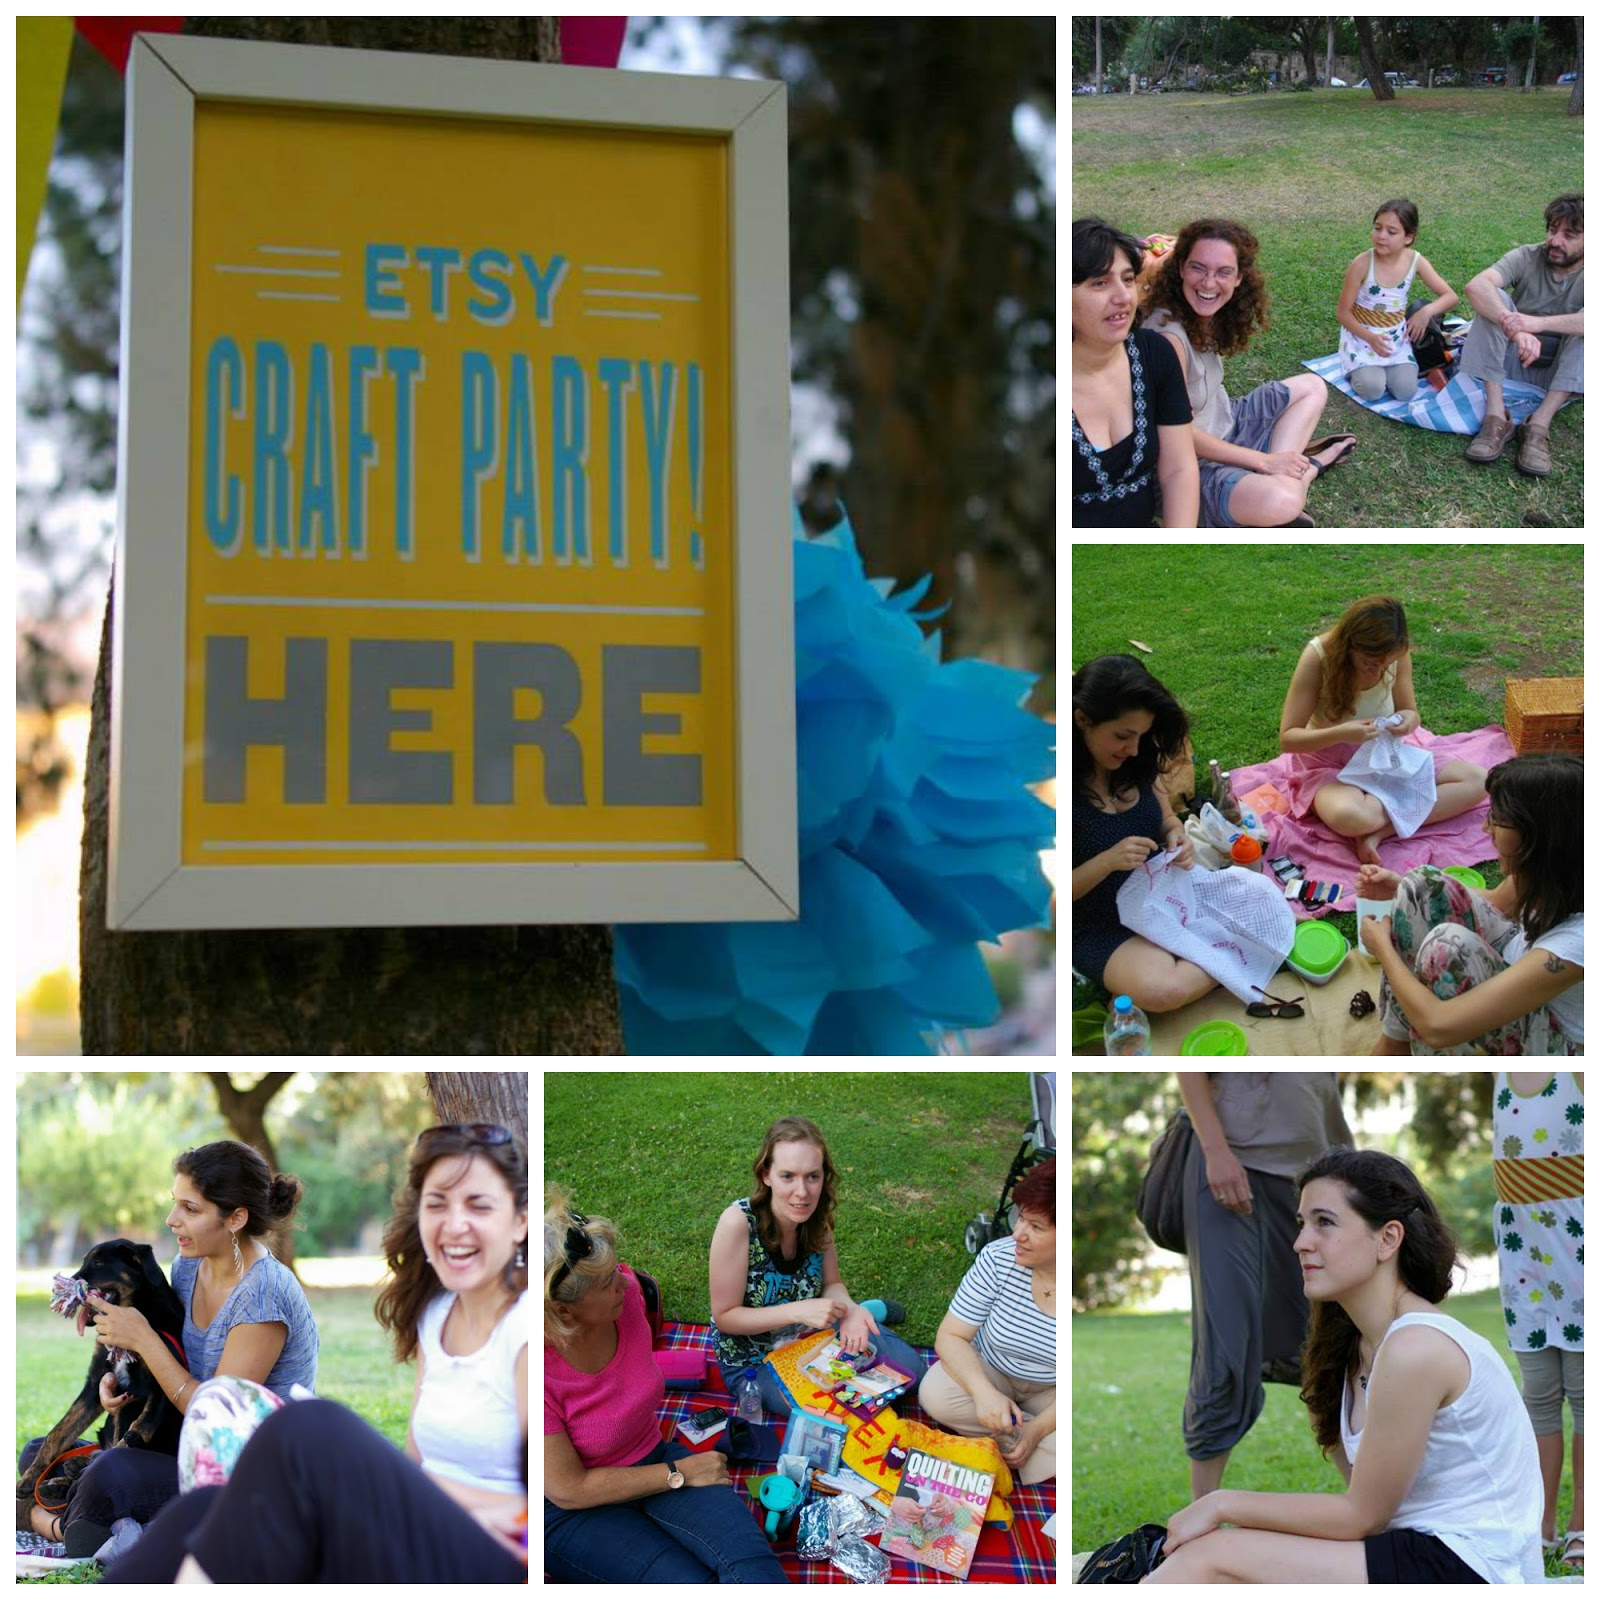 http://etsygreekstreetteam.blogspot.gr/2013/07/etsy-craft-party-2013-picnic.html